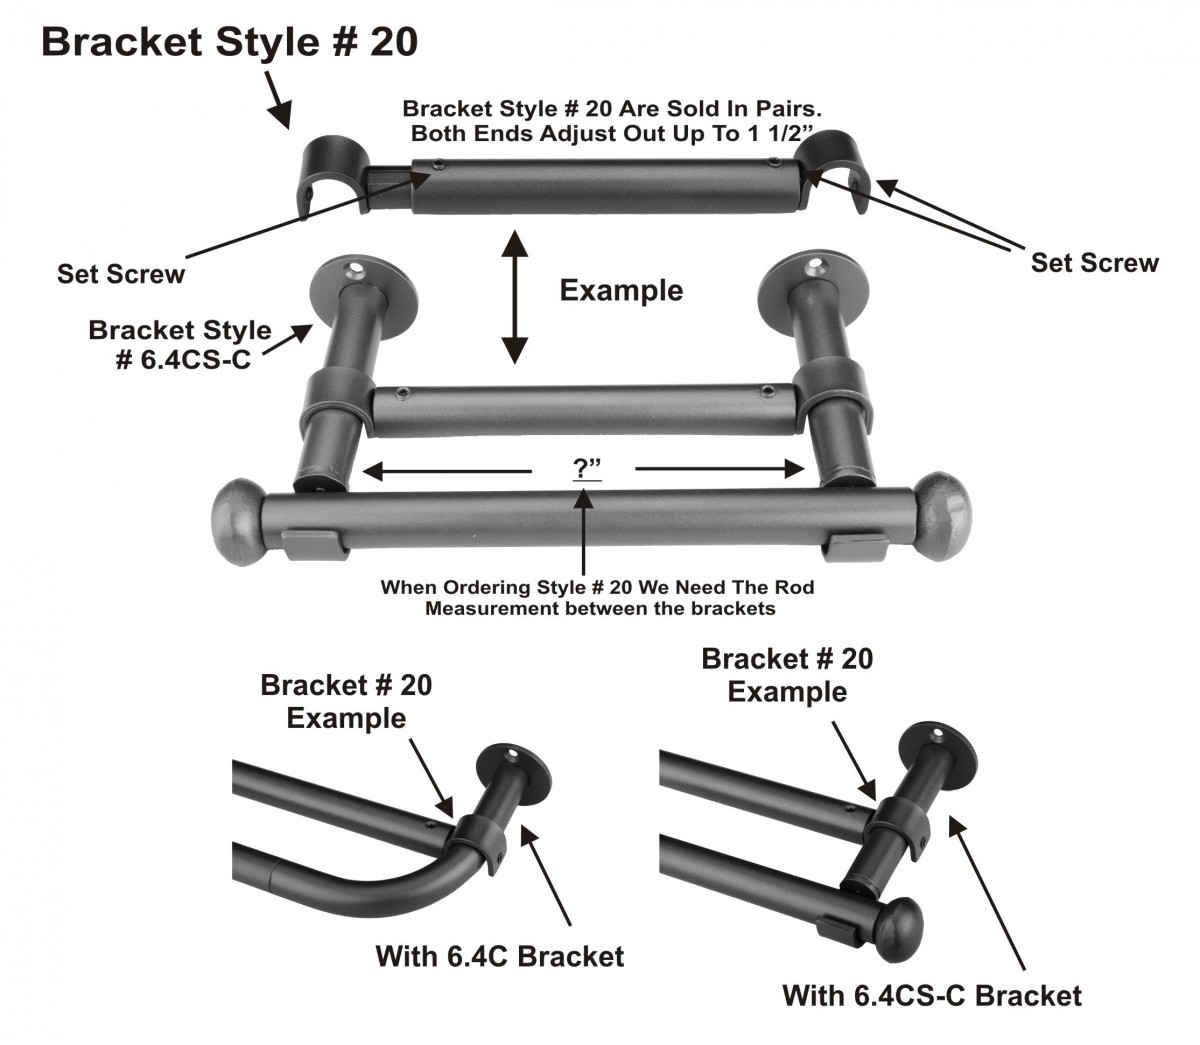 "Add a Back Rod System Bracket Style #20 for 3/4"" and  1 1/4"" Rods"